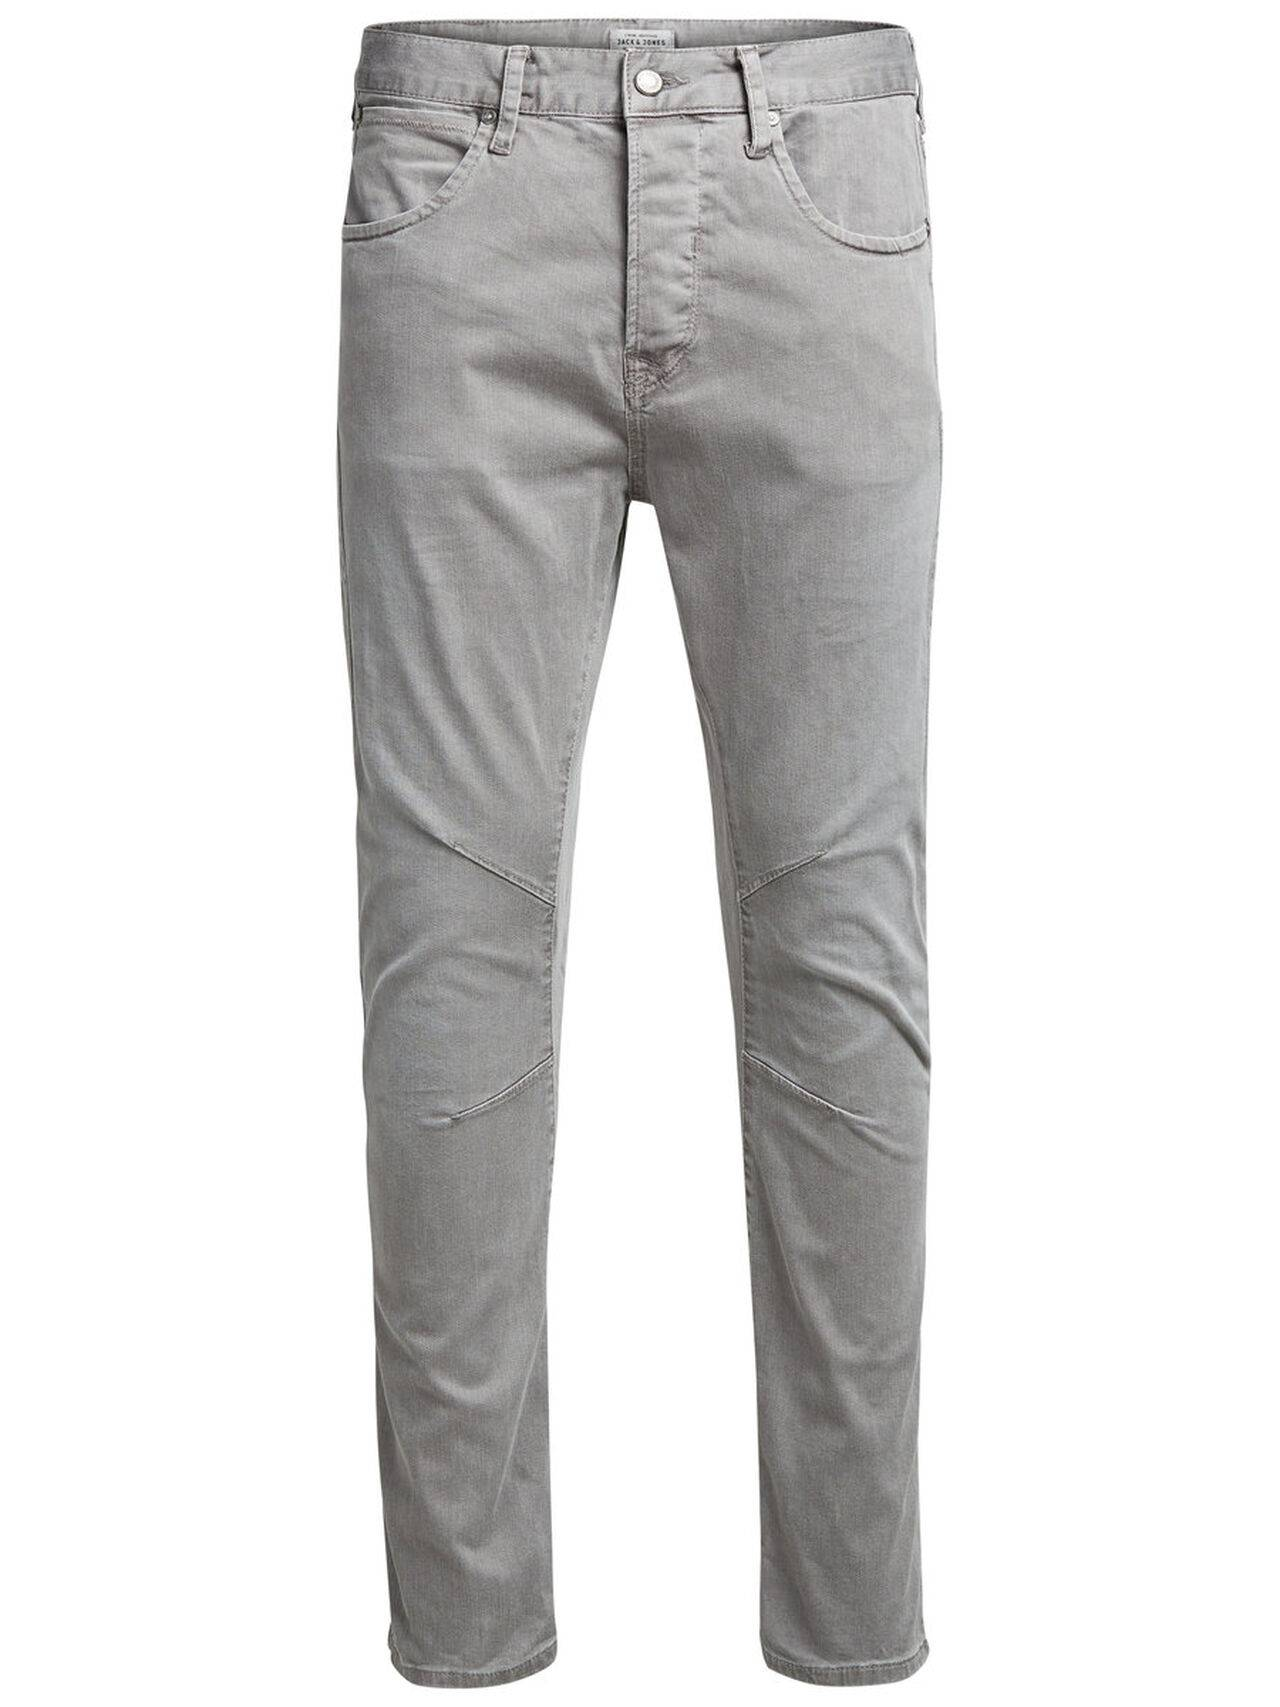 Jack & Jones Luke Echo Jos 999 Char Grey Trousers CharcoalGray